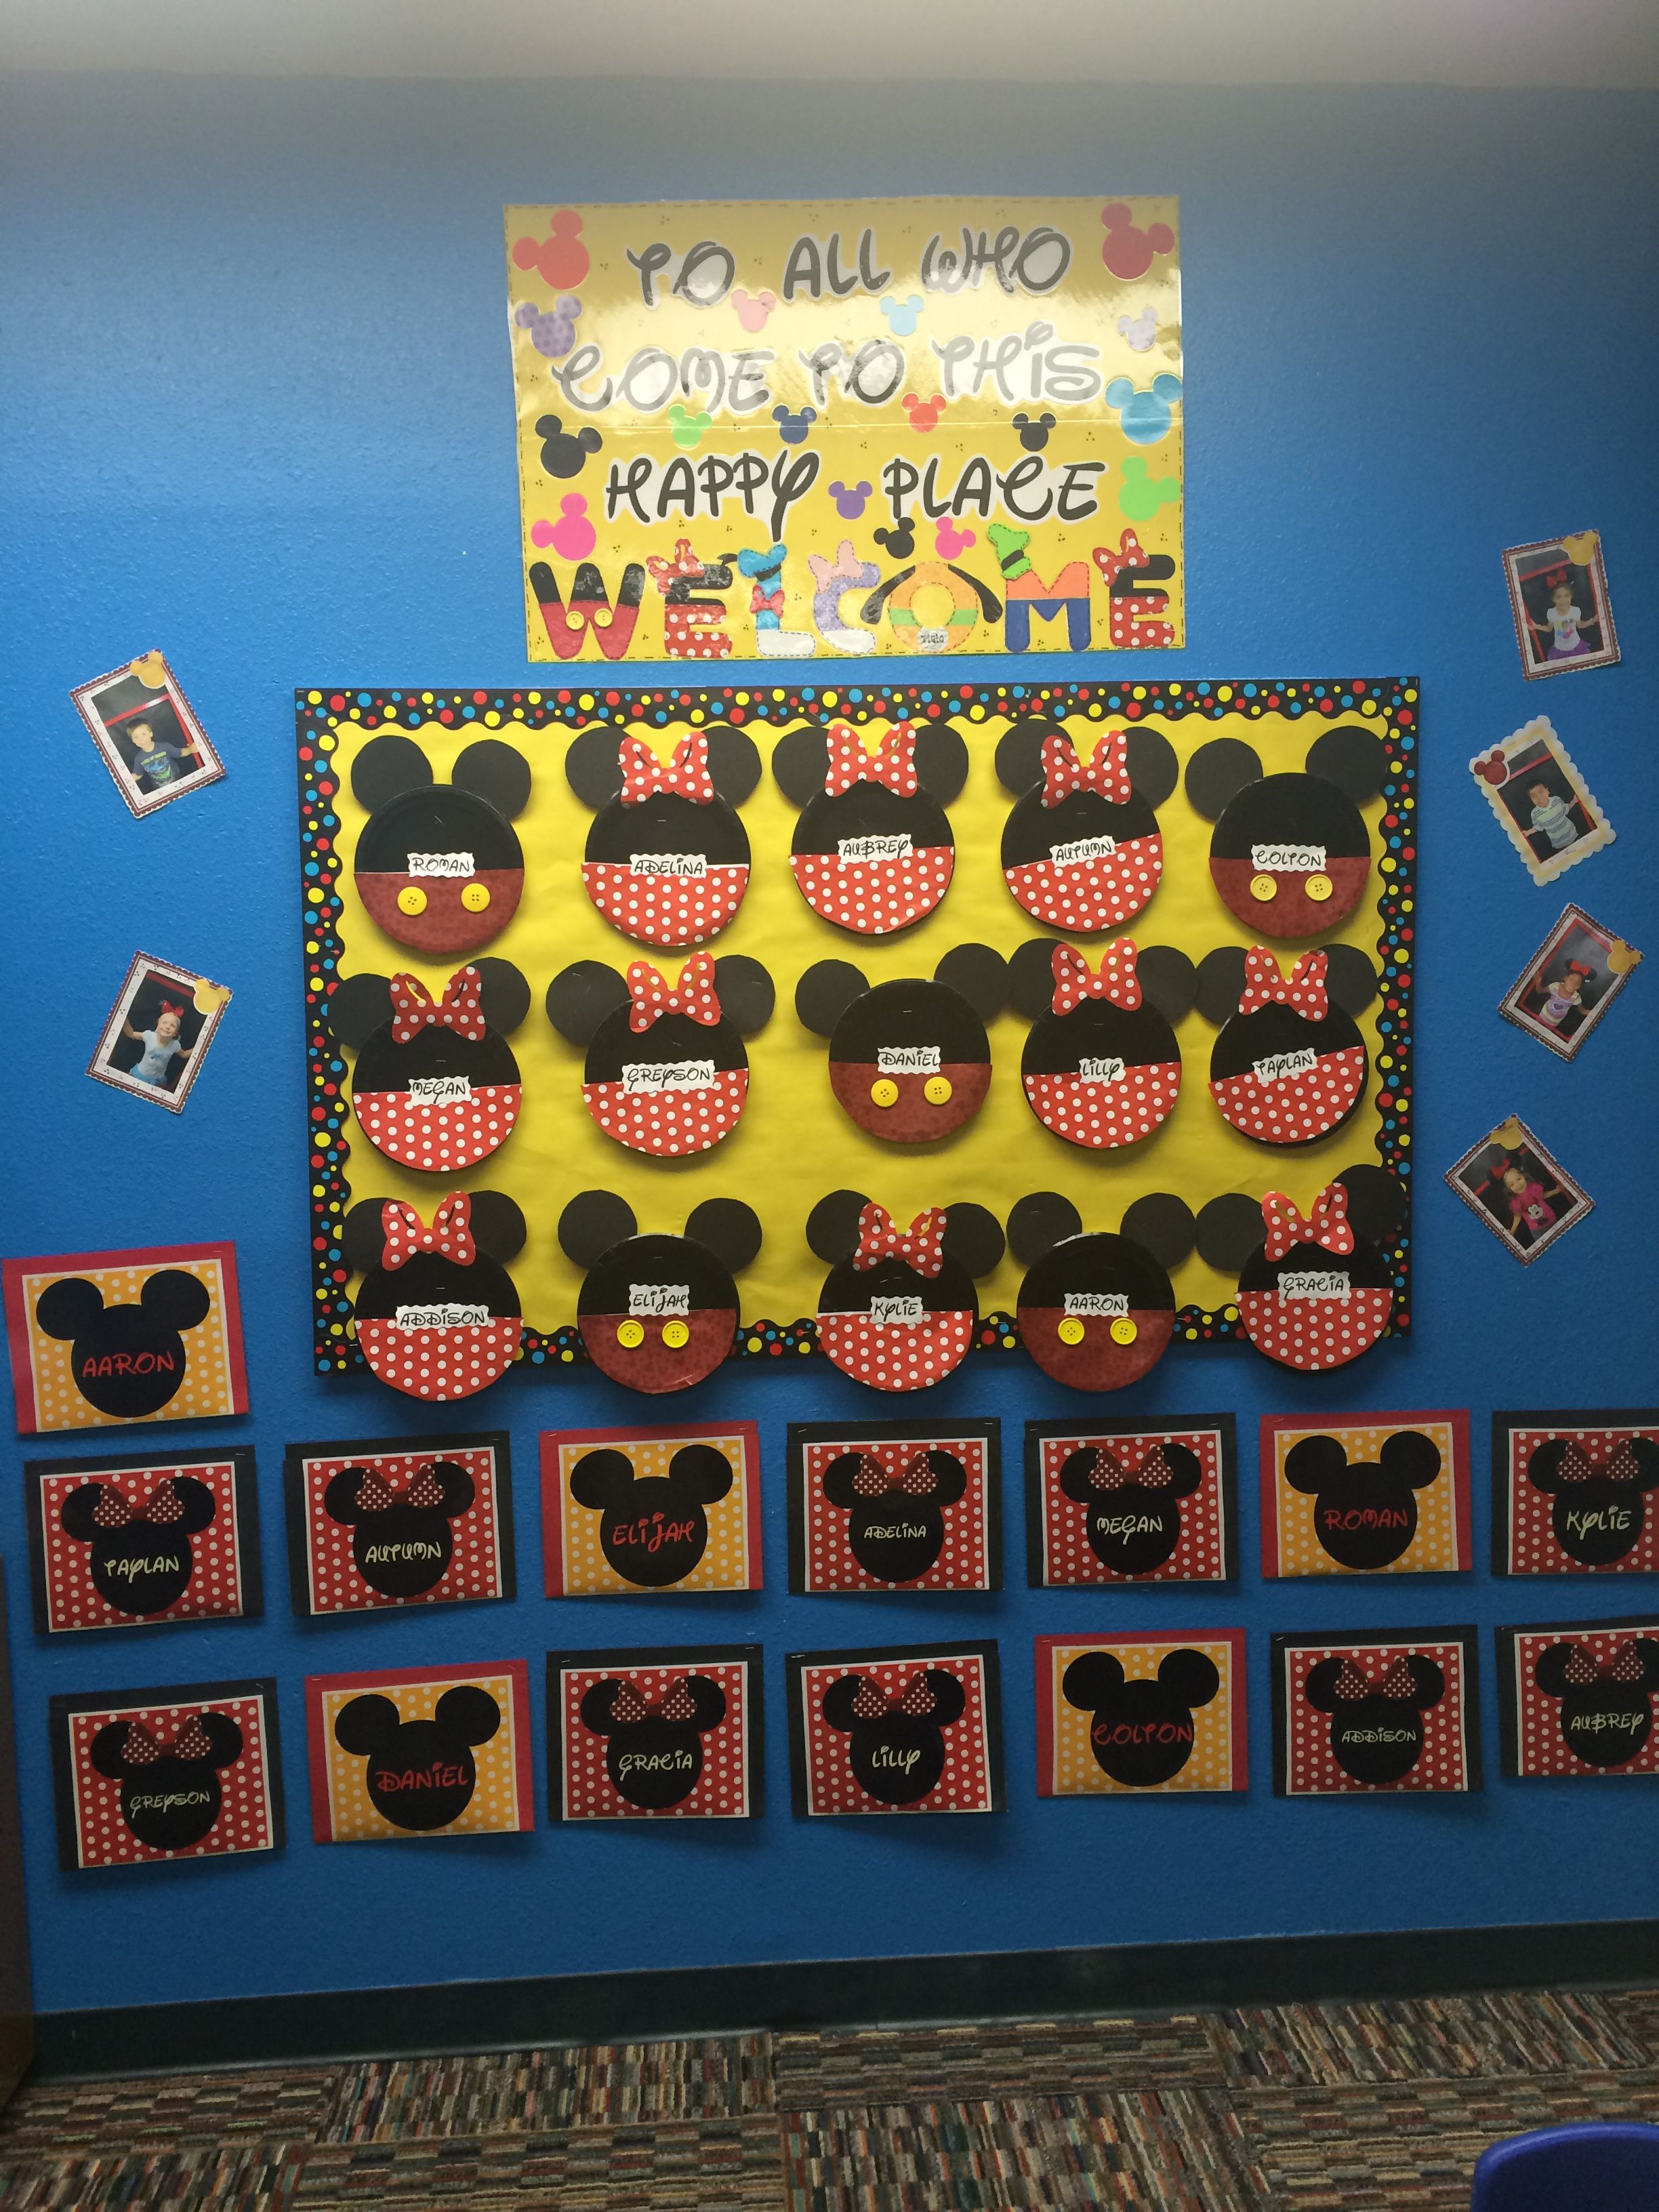 Disney Bulletin Board To All Who Come To This Happy